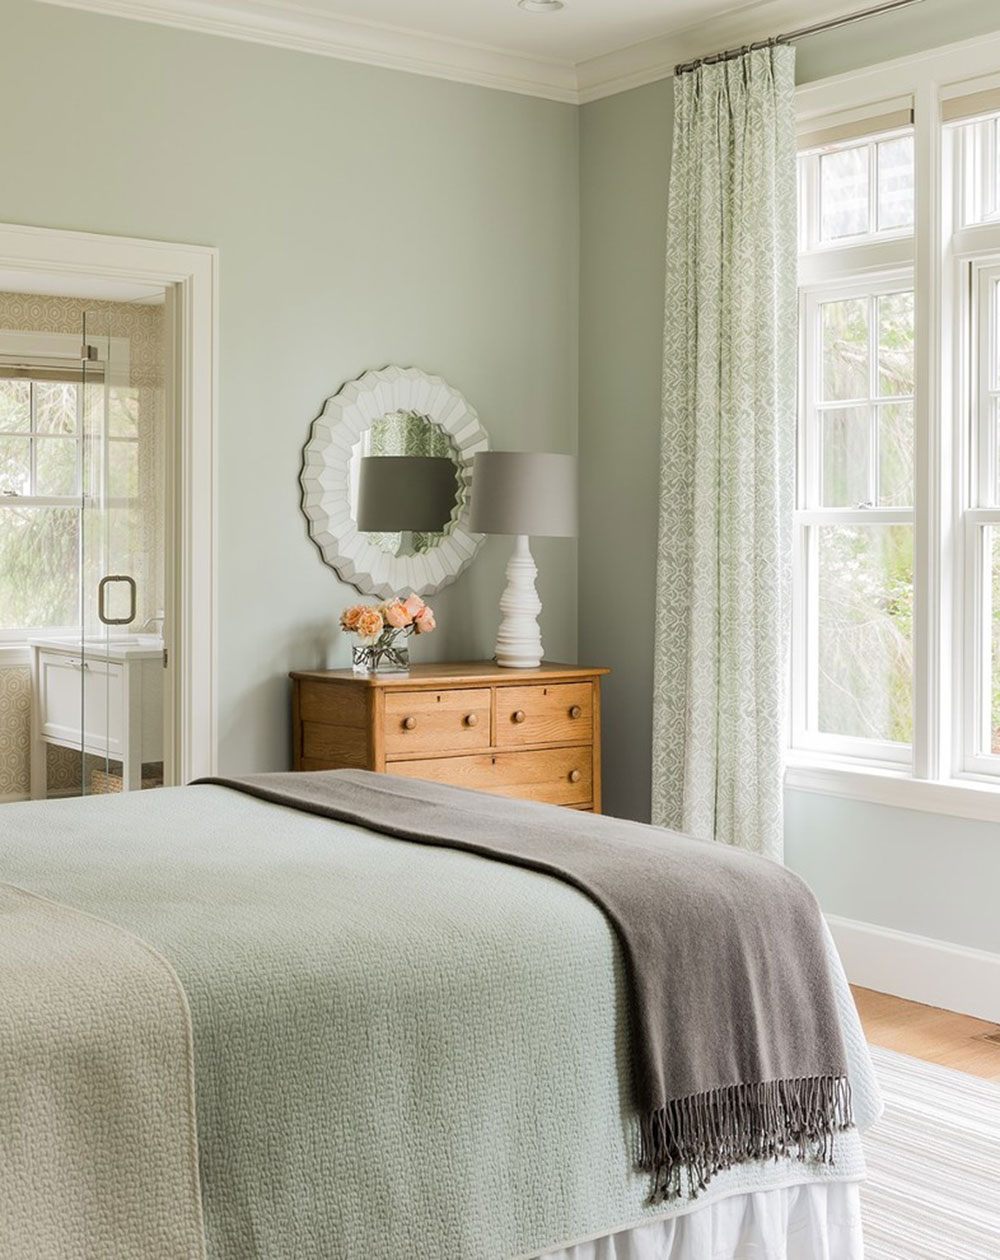 Bedroom Curtain Ideas To Try In Your Room When Decorating